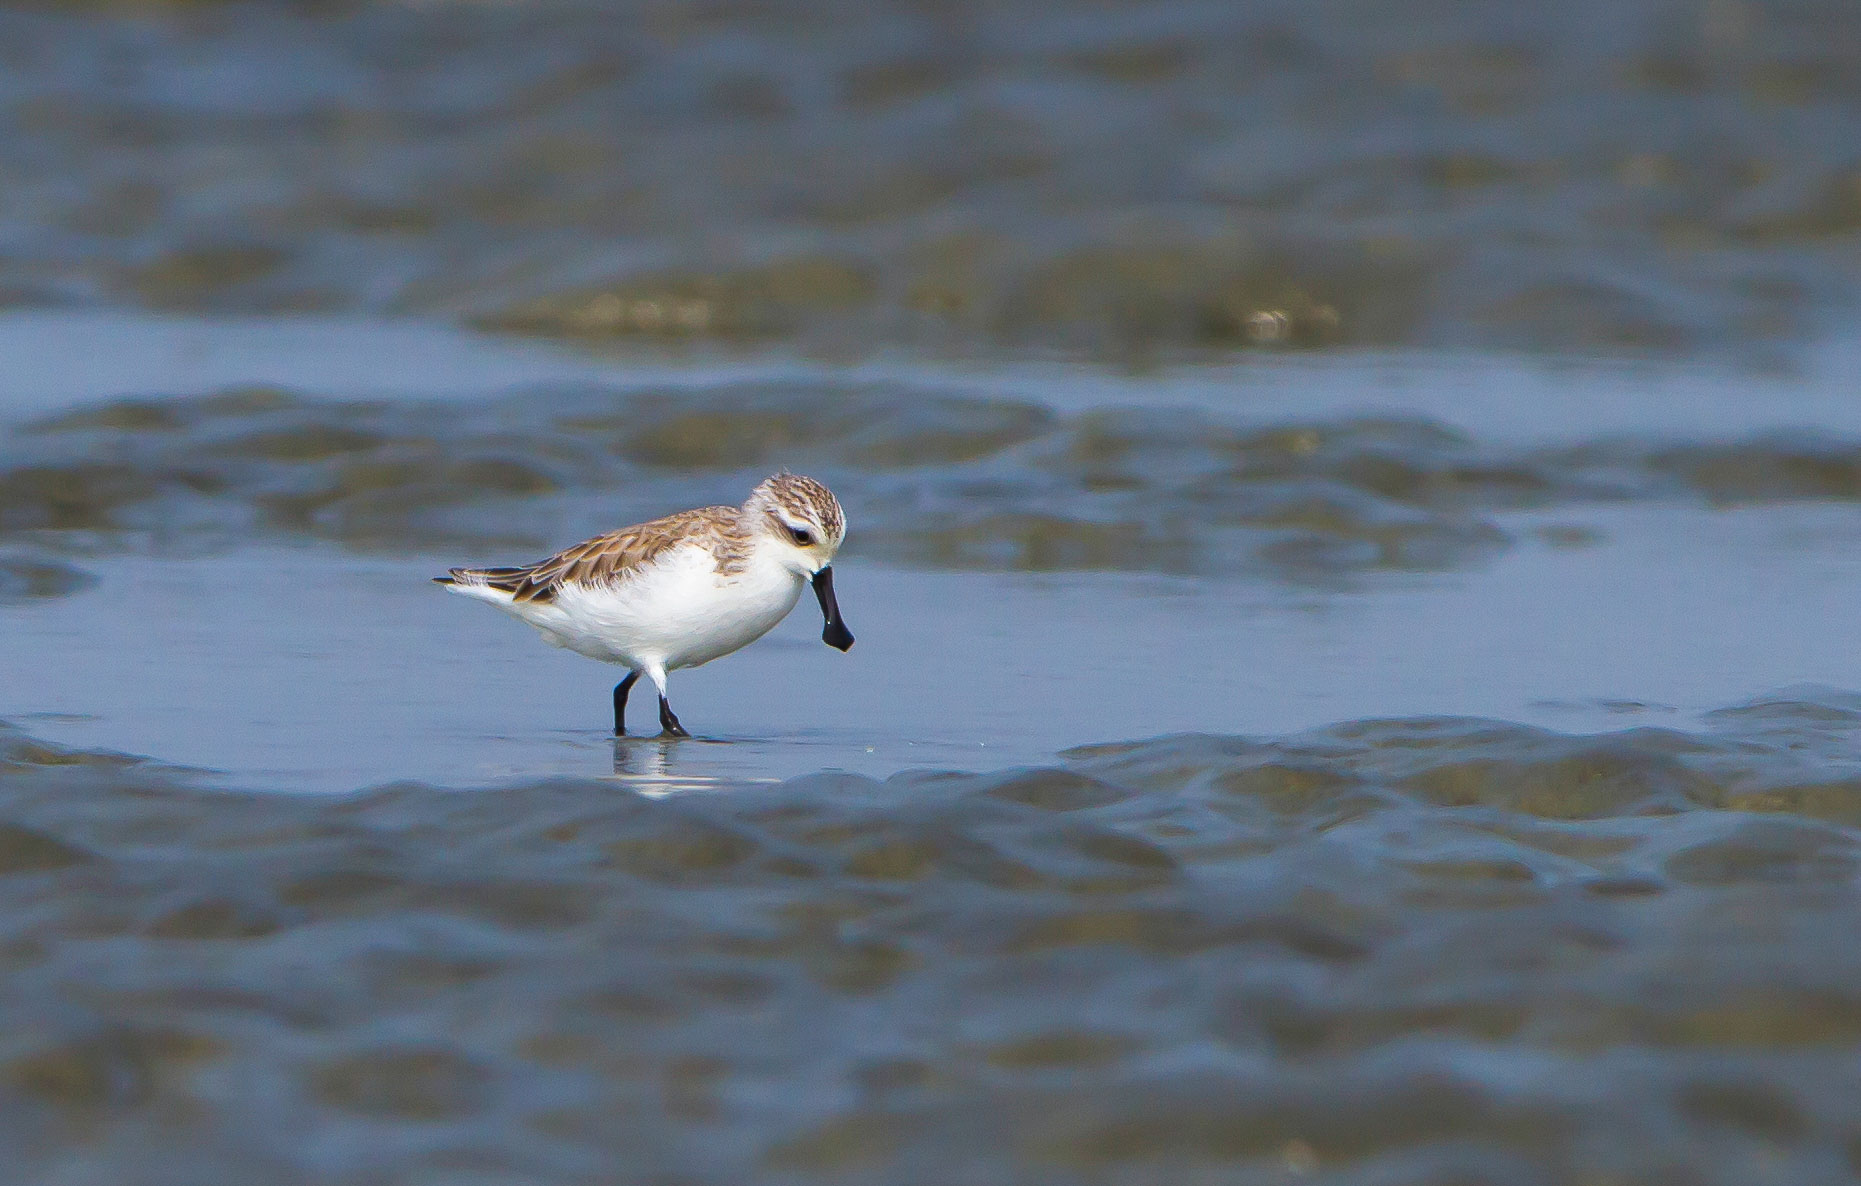 The Spoon-bill is considered the rarest sandpiper in the world. Sayam U. Chowdhury